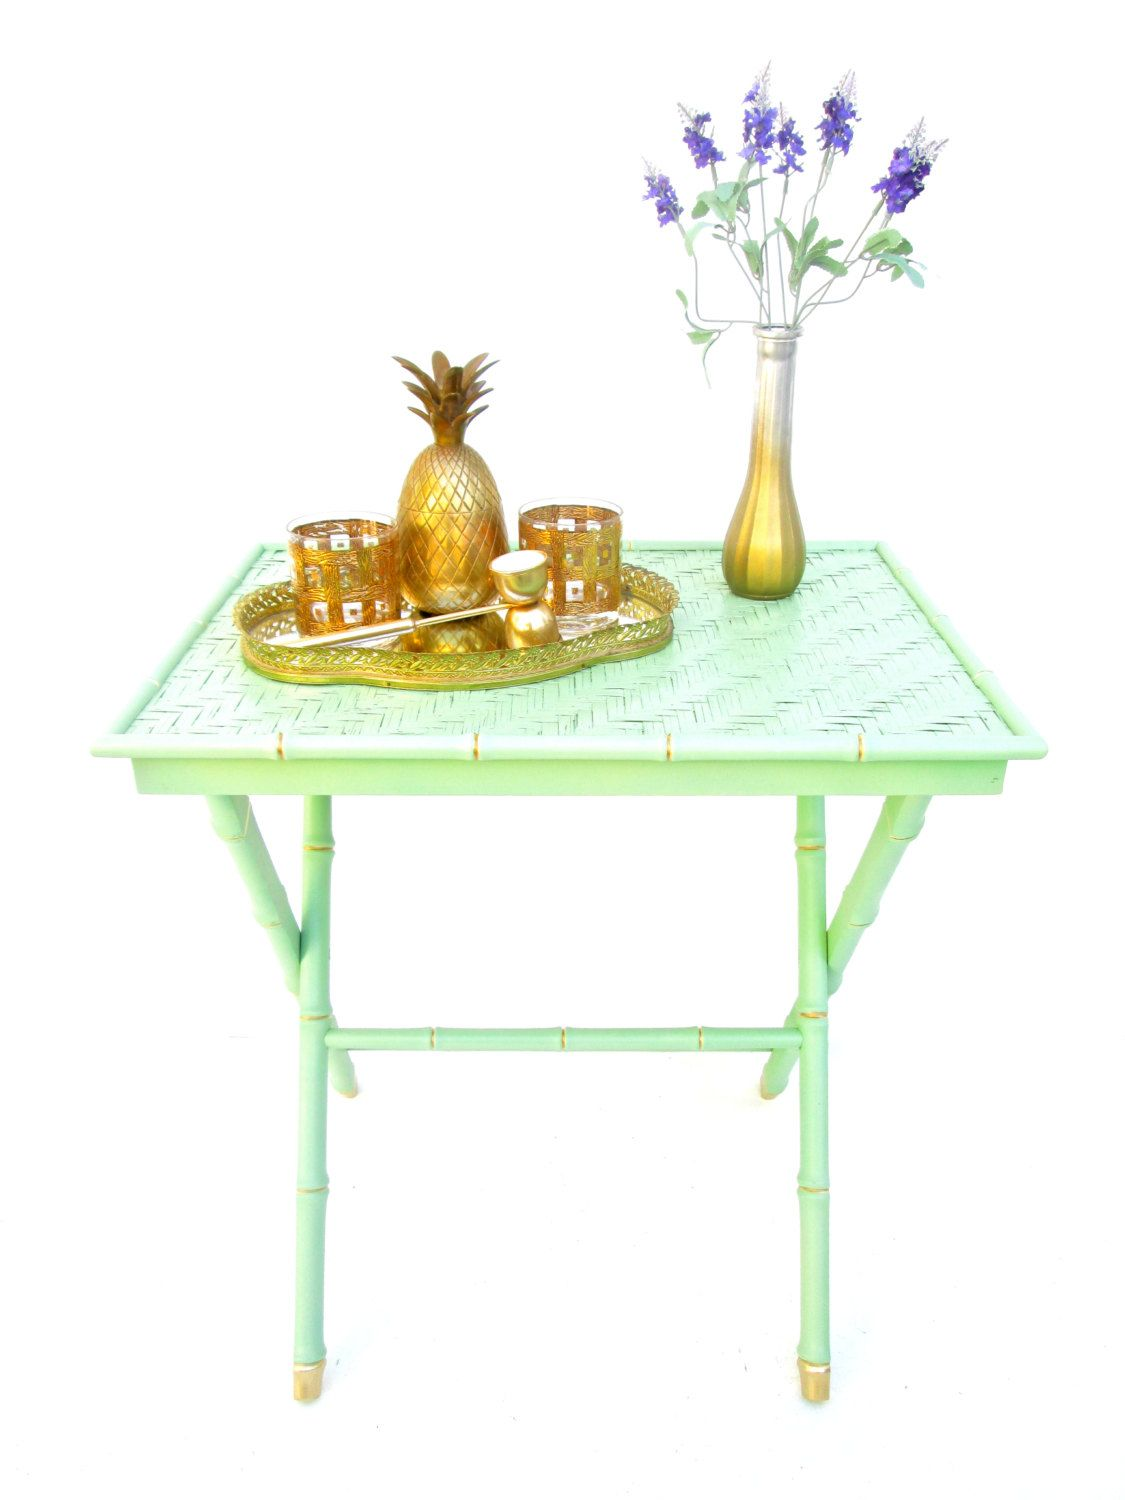 Vintage chinoiserie jade green u gold faux bamboo xform tray table